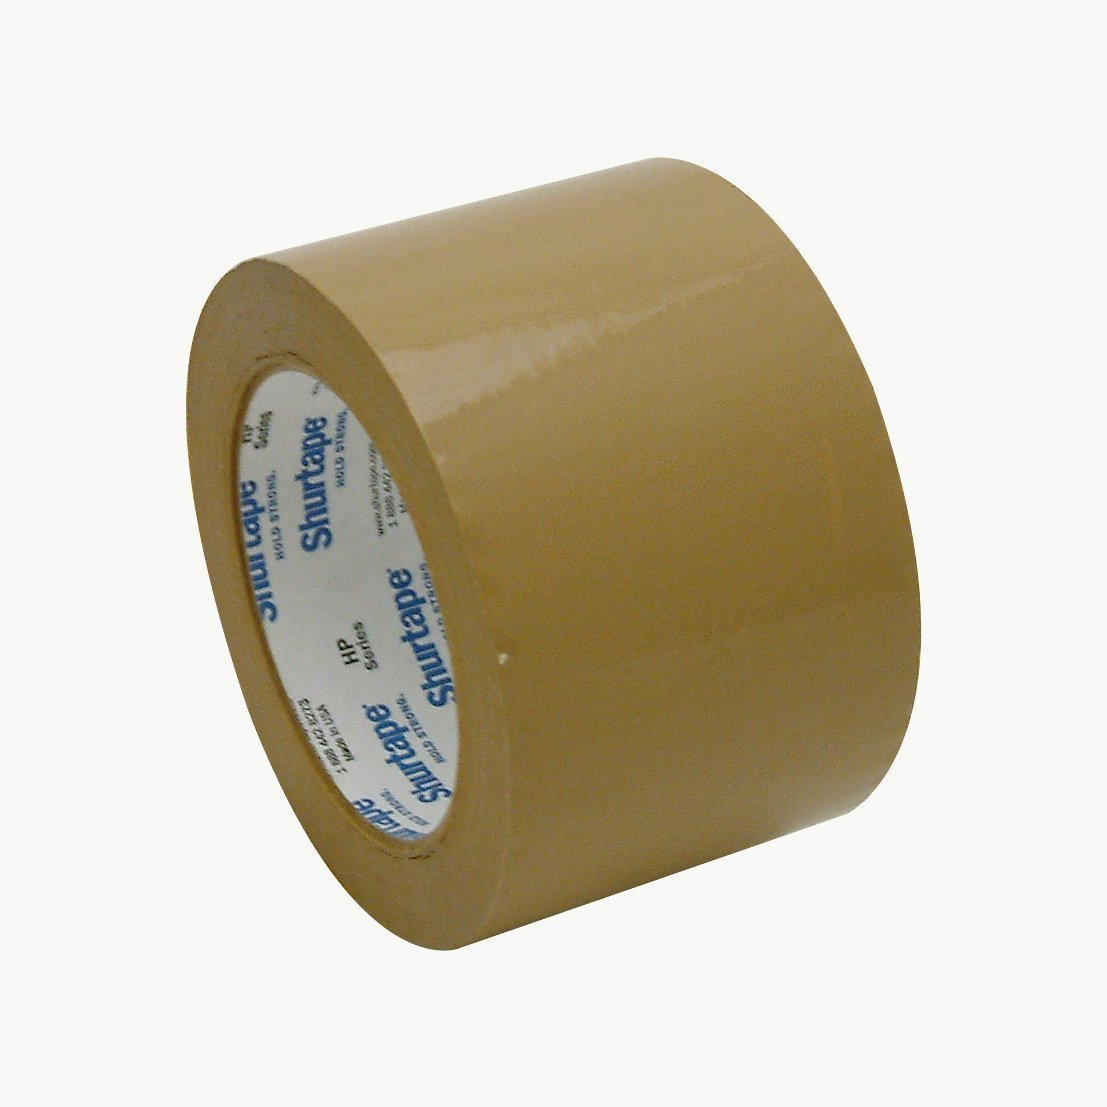 Shurtape HP-200 Production-Grade Packaging Tape: 3 in. x 110 yds. (Tan)